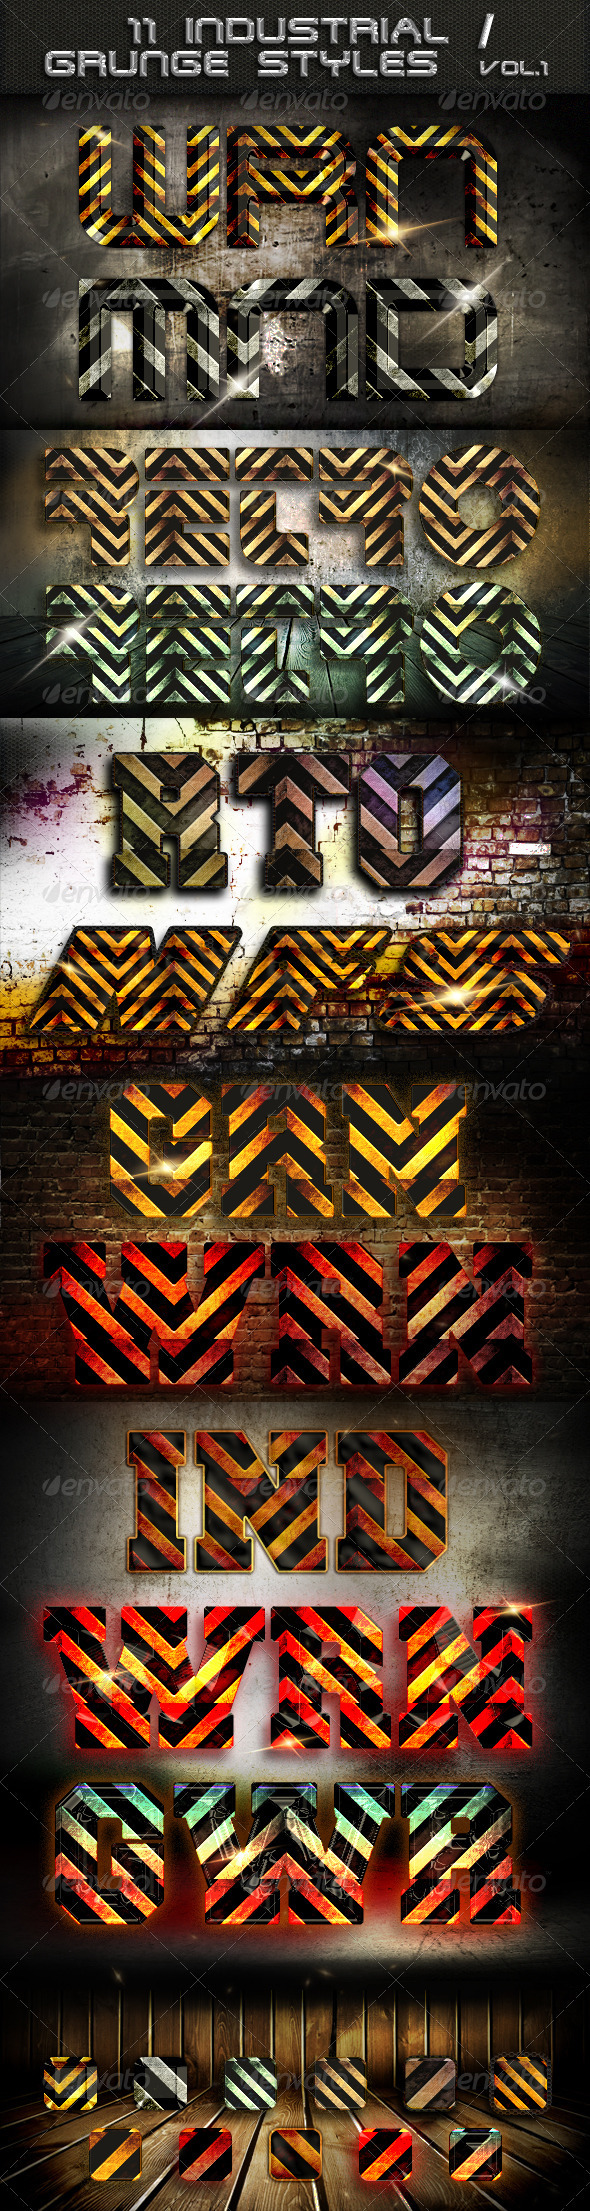 GraphicRiver 11 Industrial Grunge Styles 3460001